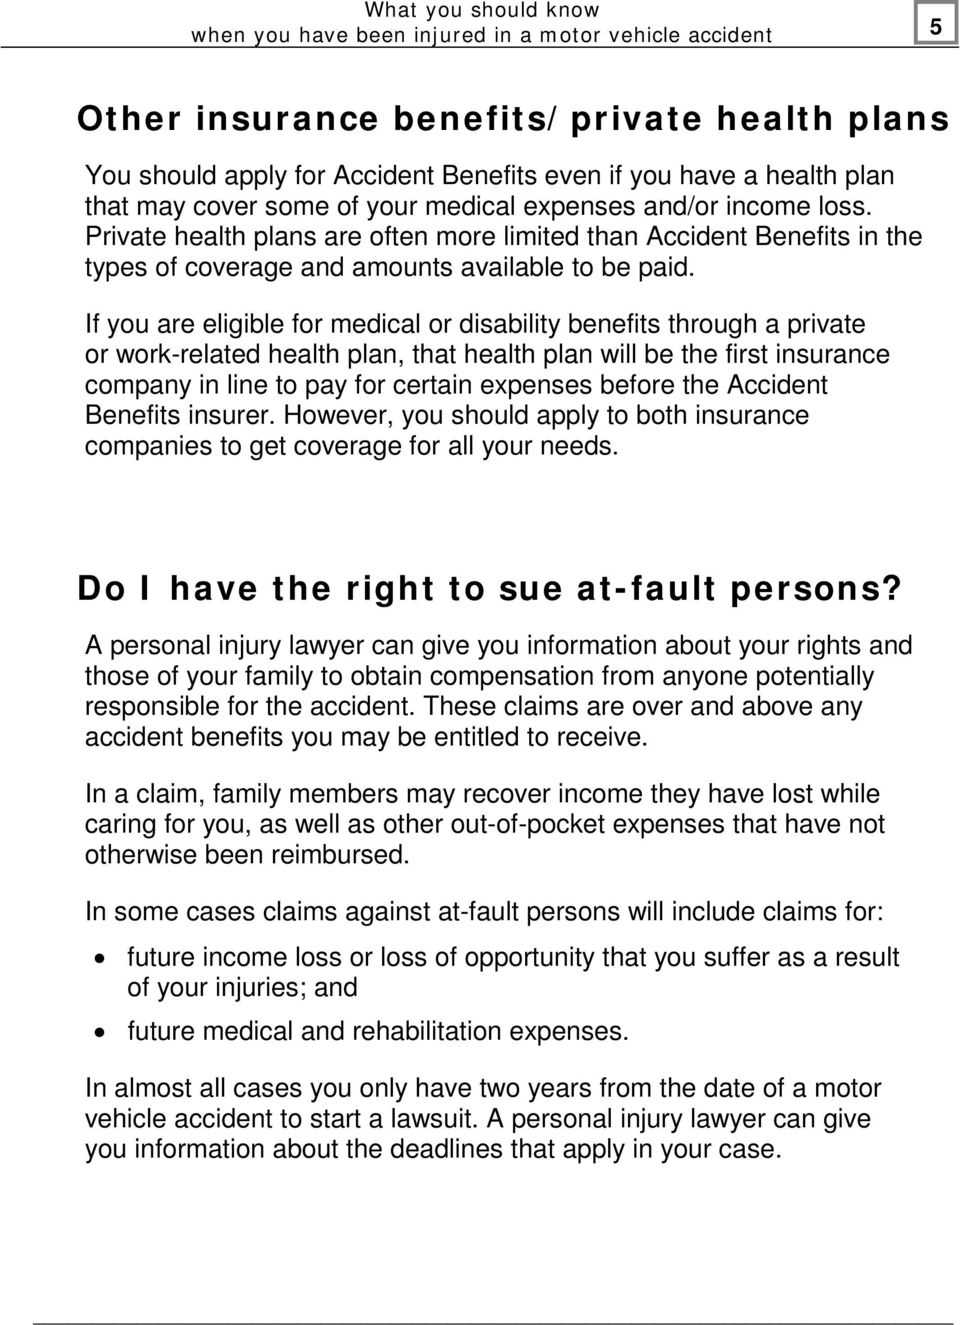 If you are eligible for medical or disability benefits through a private or work-related health plan, that health plan will be the first insurance company in line to pay for certain expenses before